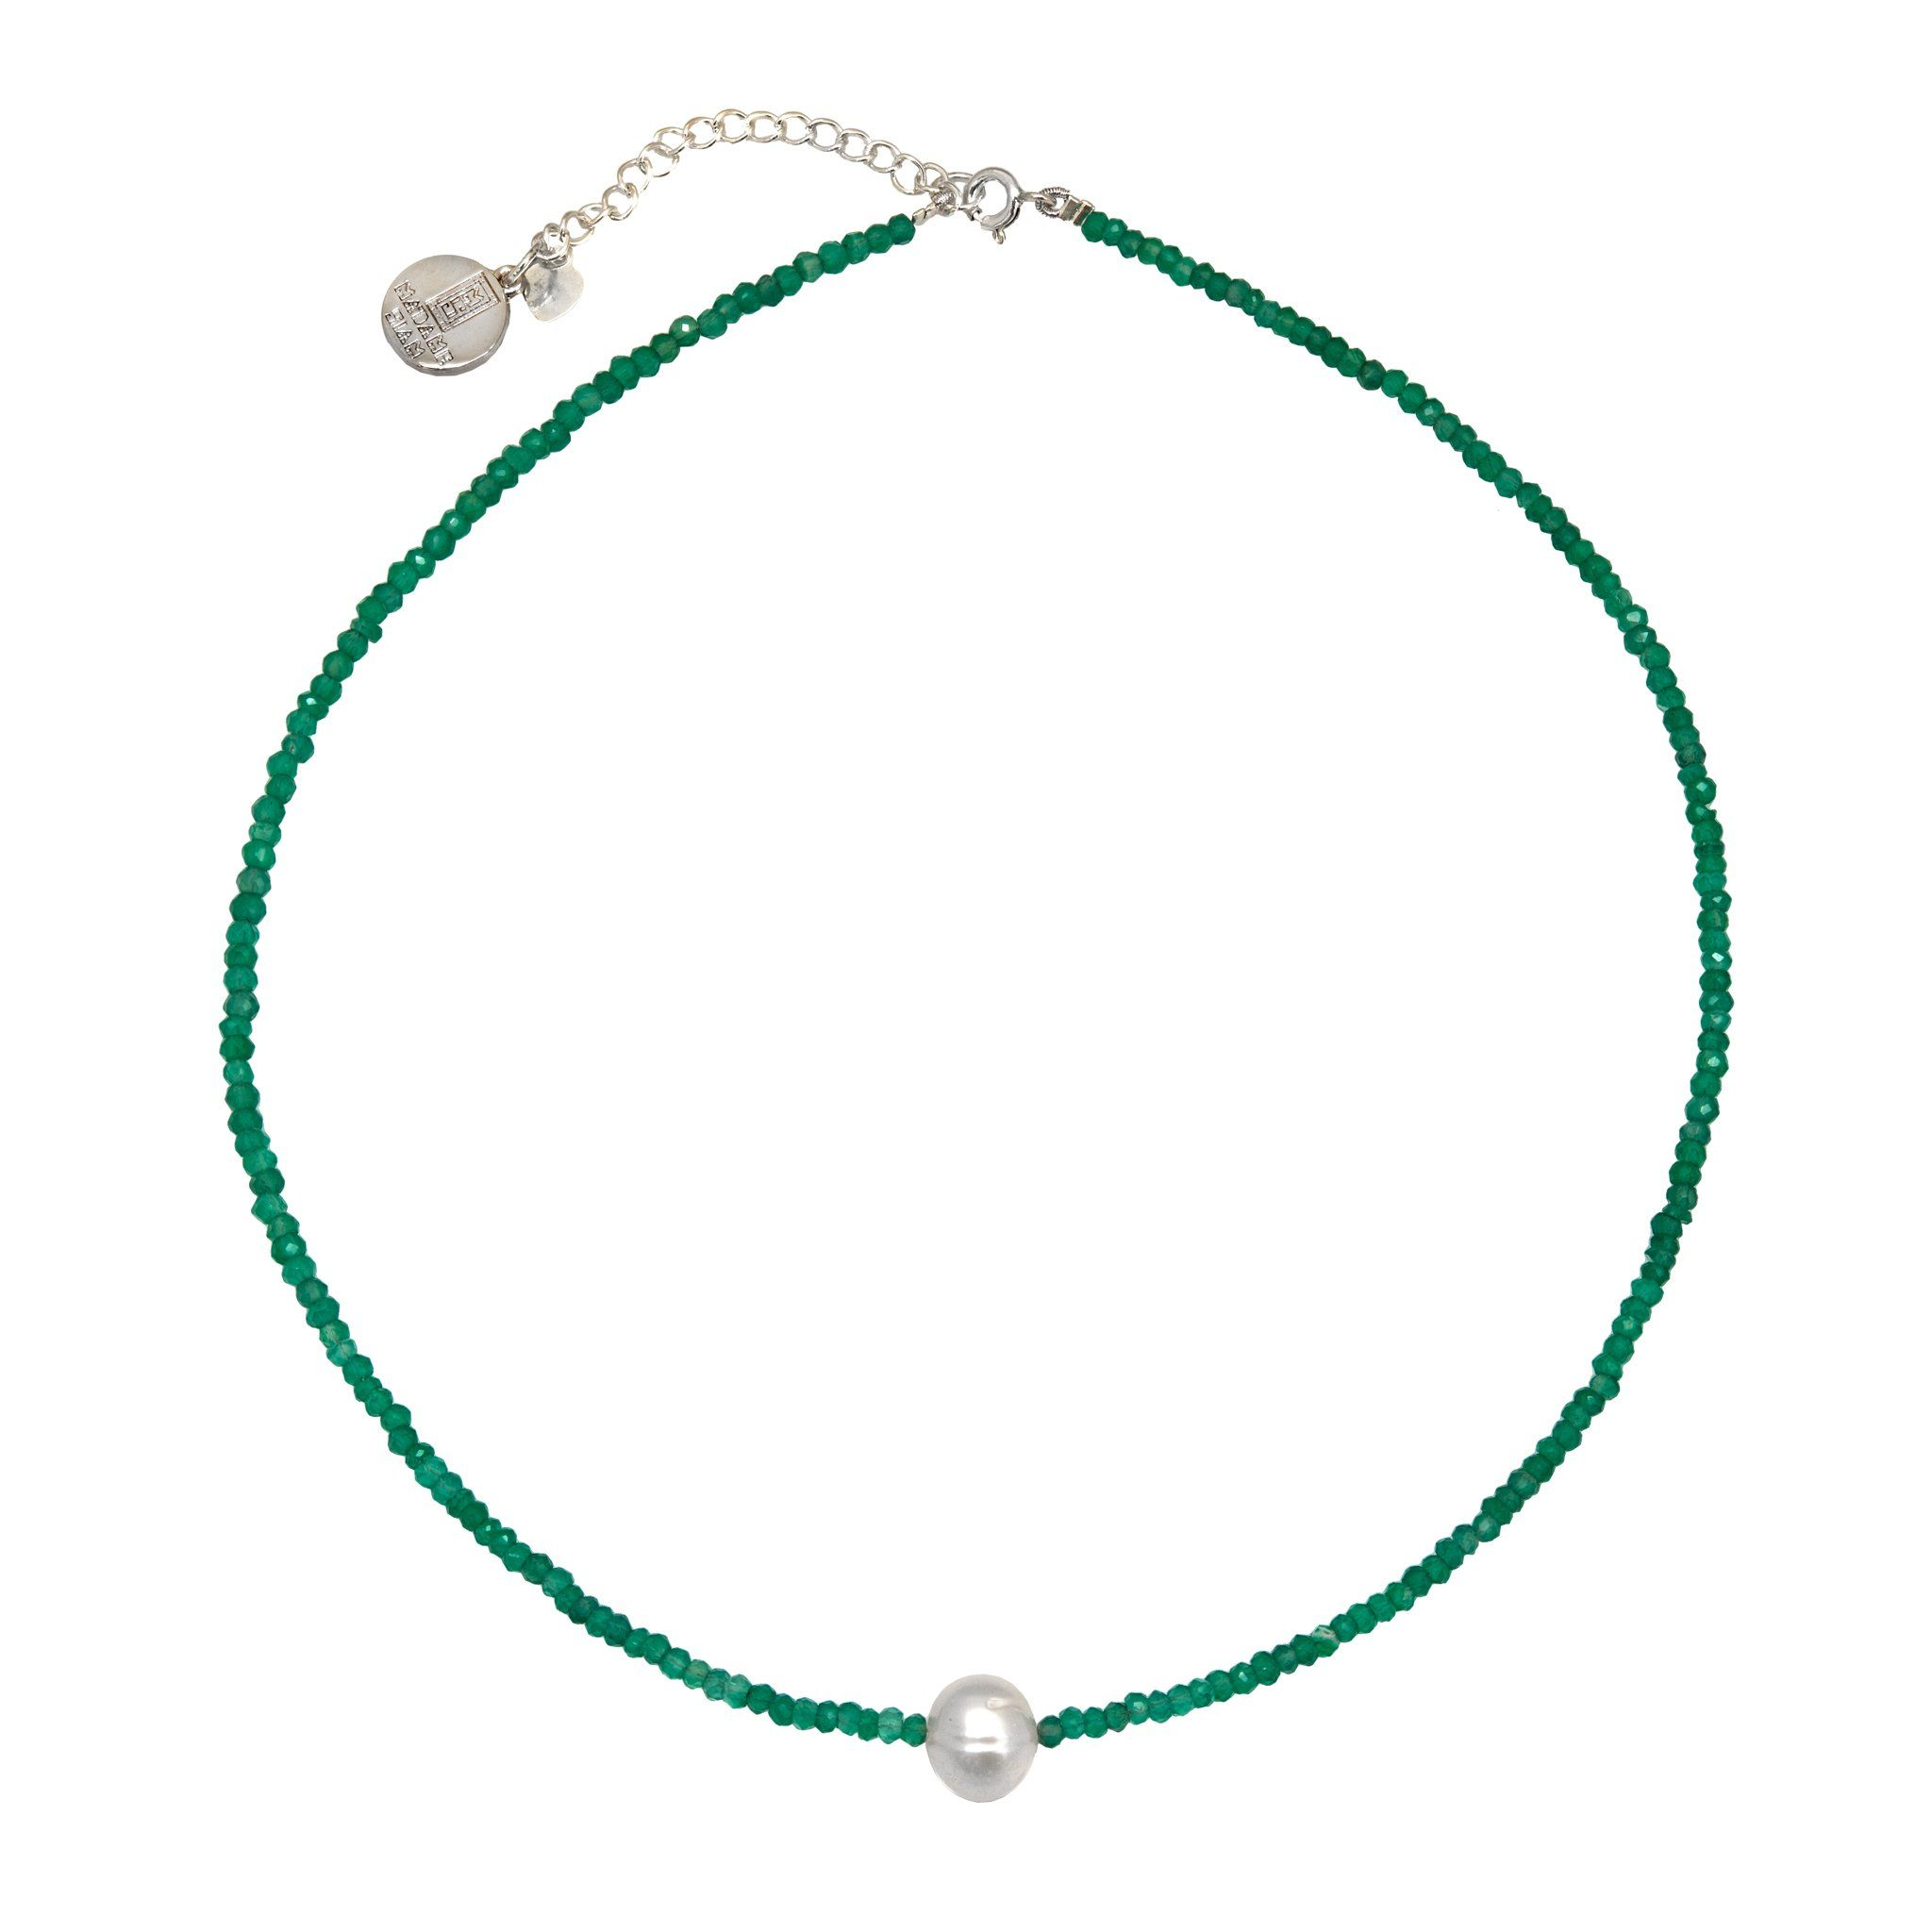 MINIMA pearl and green onyx chocker - MadamSiam